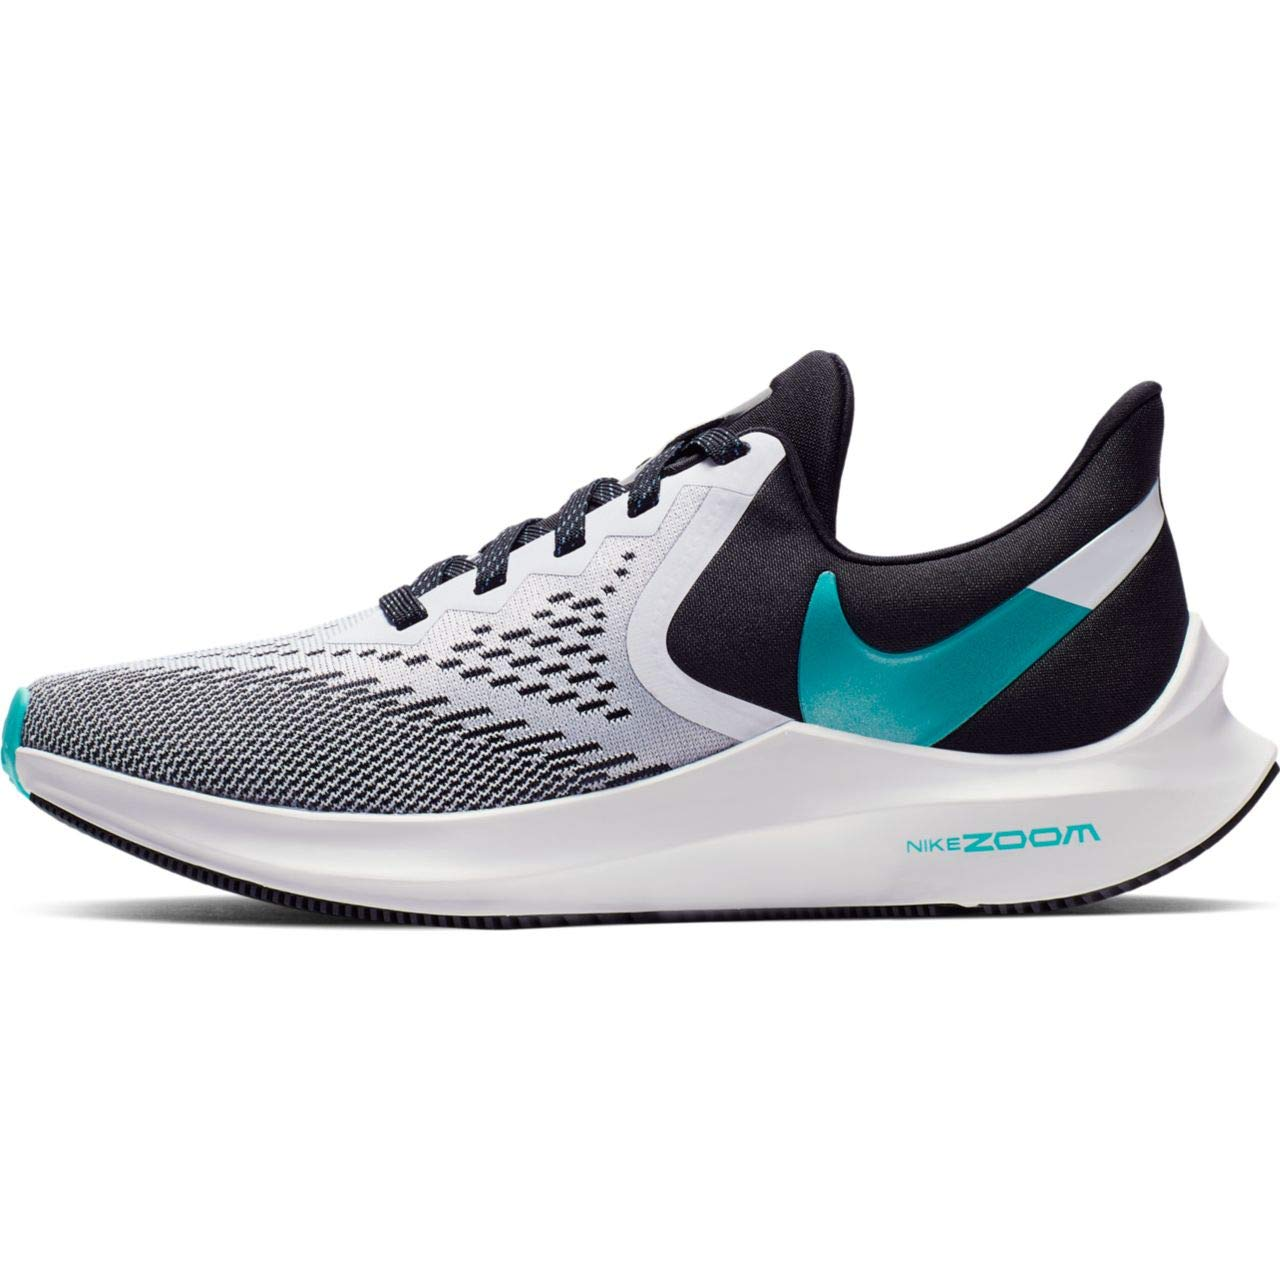 100% authentic 0c969 63661 Amazon.com | Nike WMNS Zoom Winflo 6 Womens Sneakers AQ8228 ...